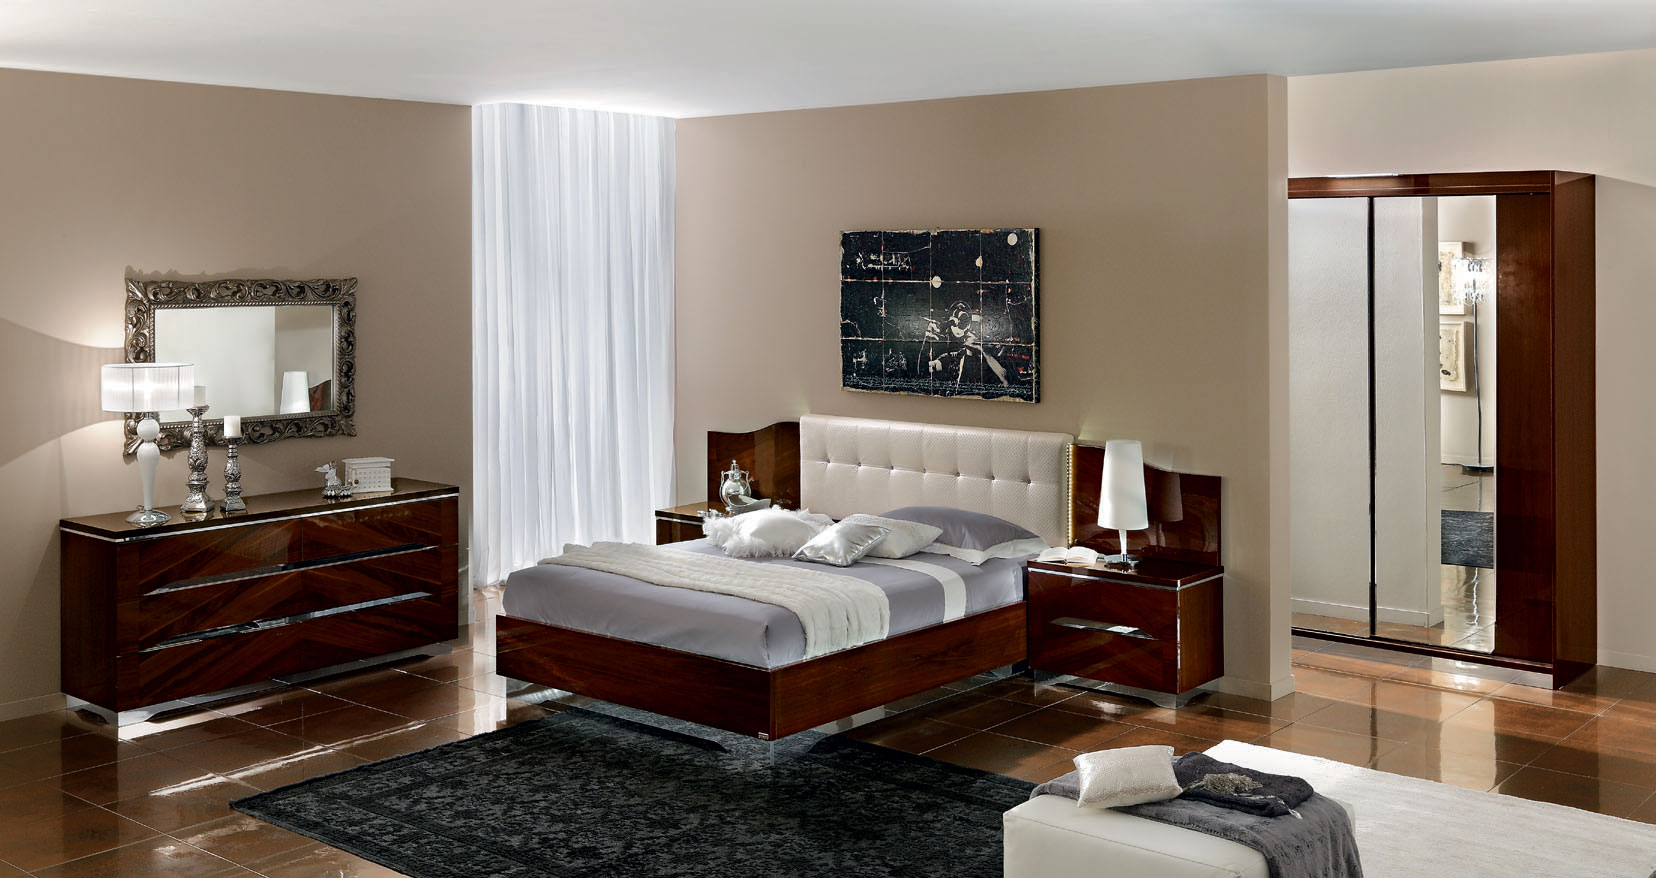 The simplicity of modern bedroom furniture 2671 bedroom - Brown bedroom furniture decorating ideas ...